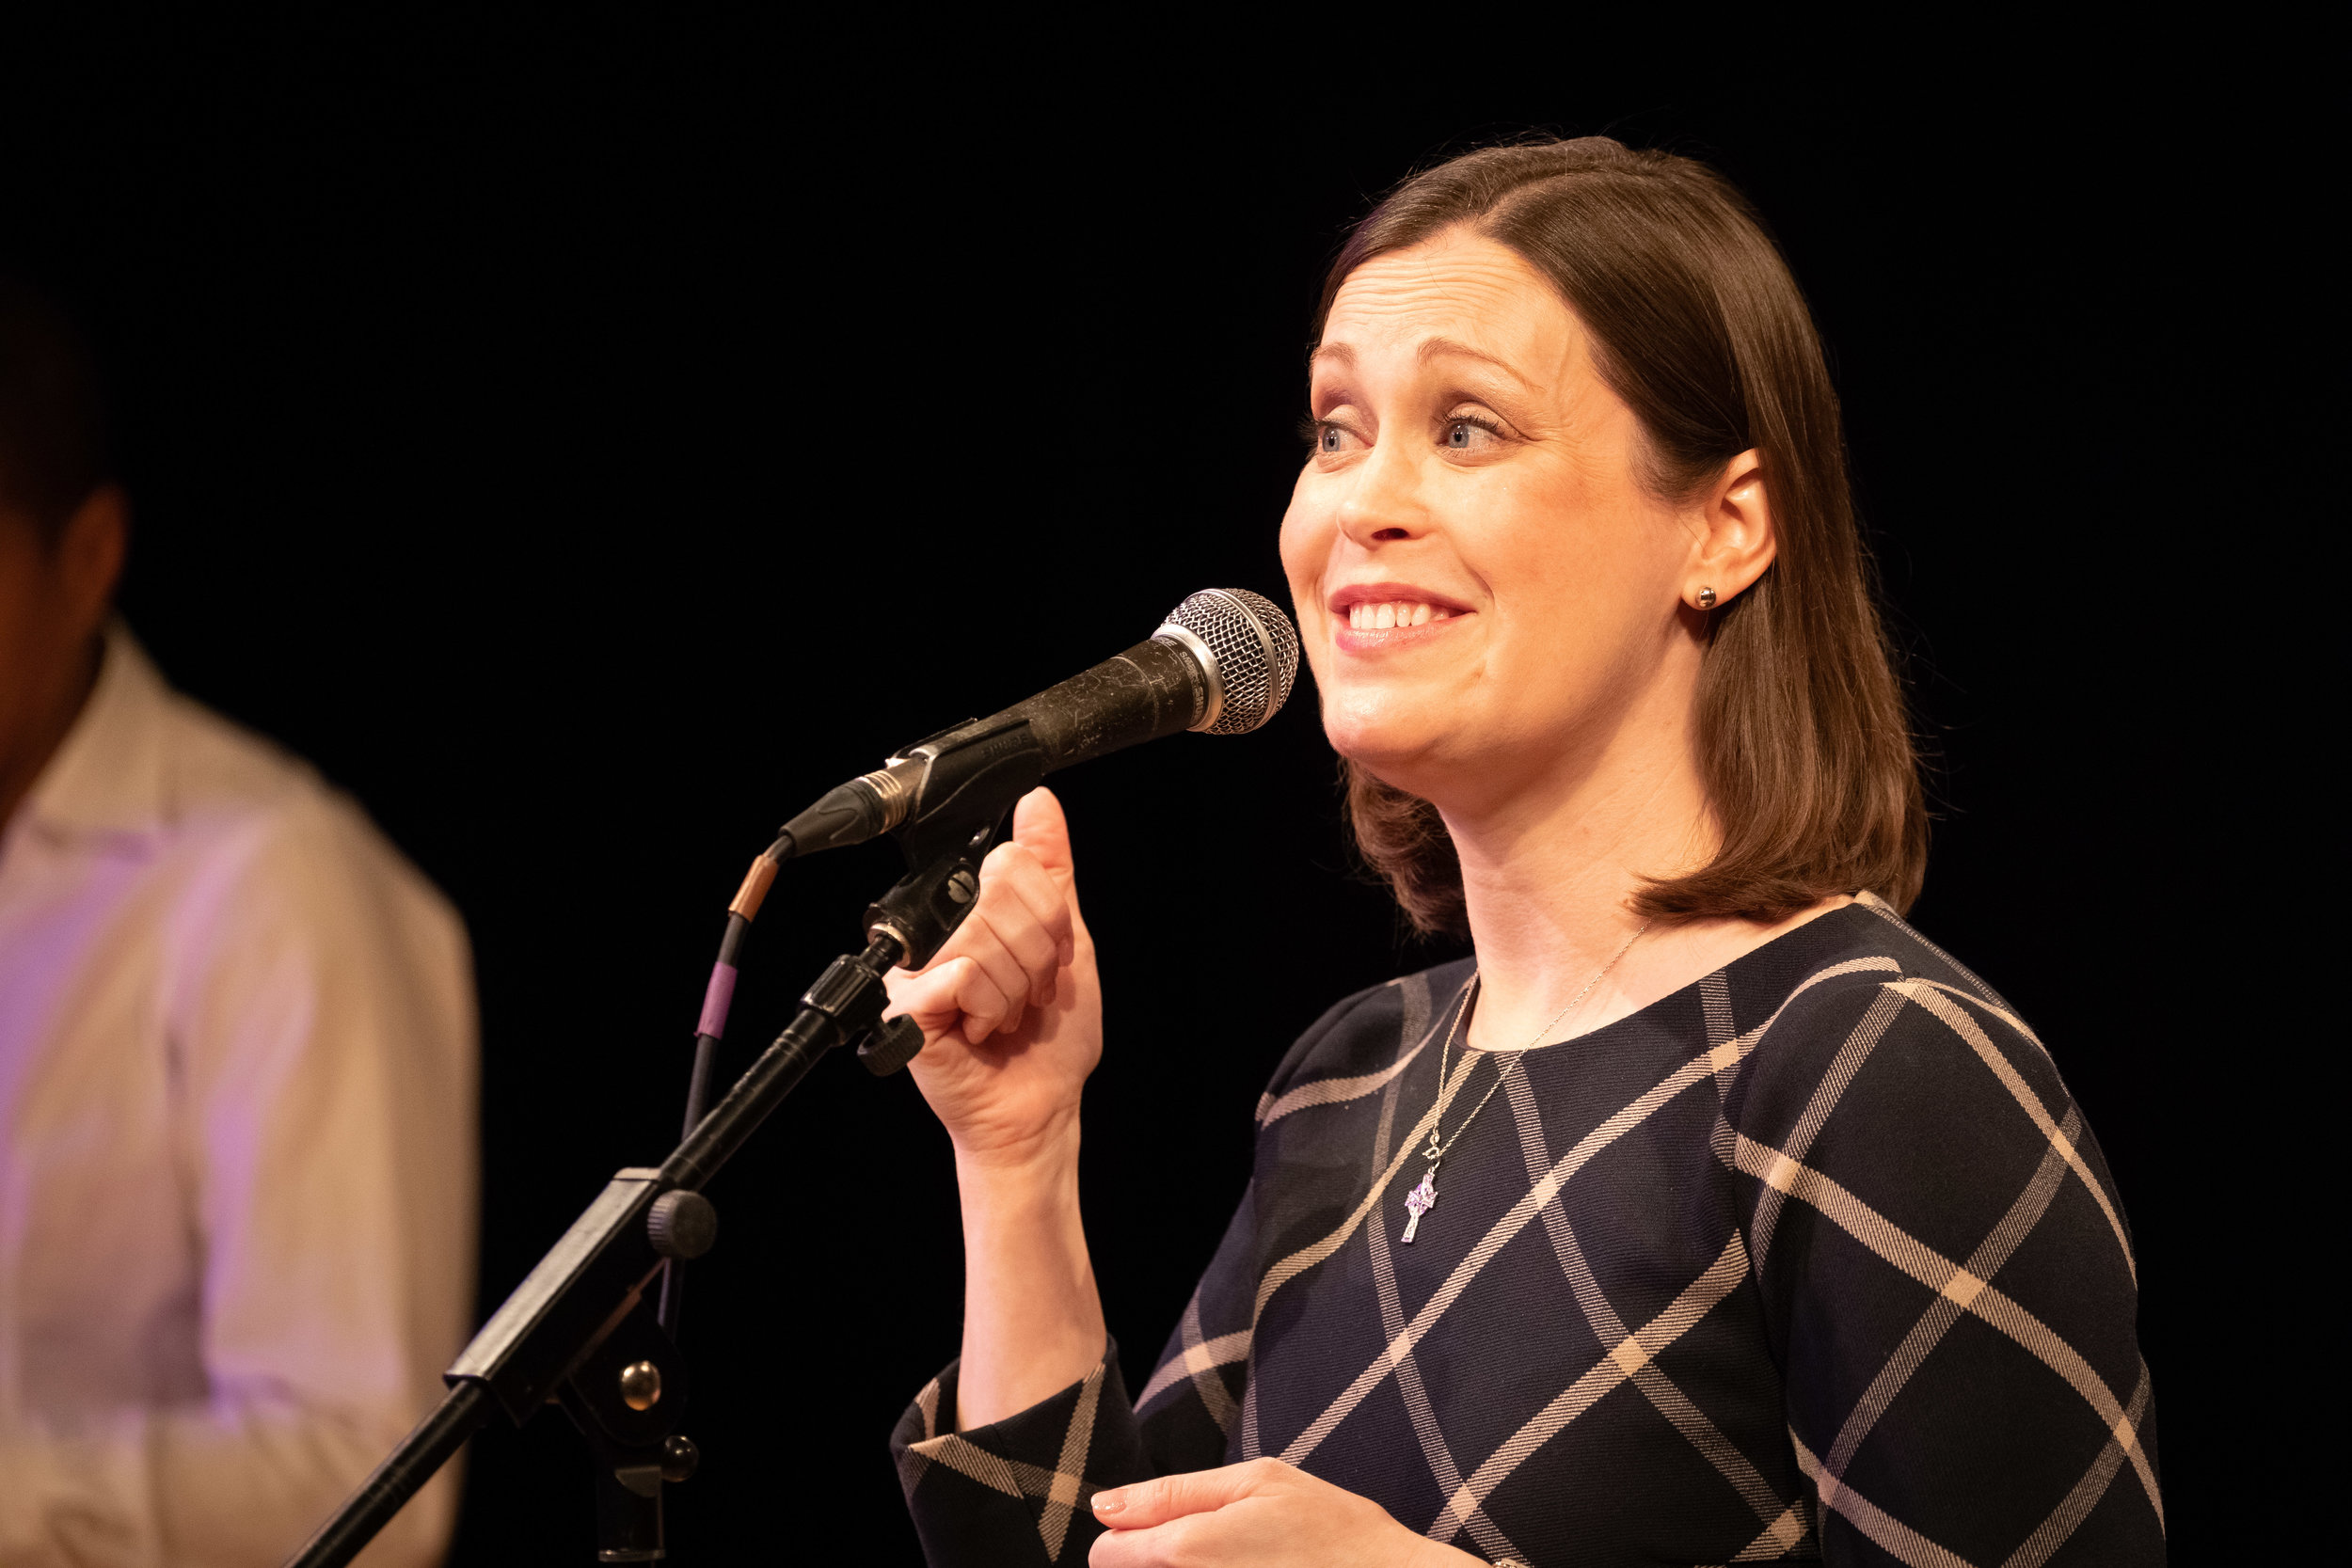 Sarah Brady shares her story with our audience at J3 at Cambridge Junction in February 2019. Photo by Mark Danson.